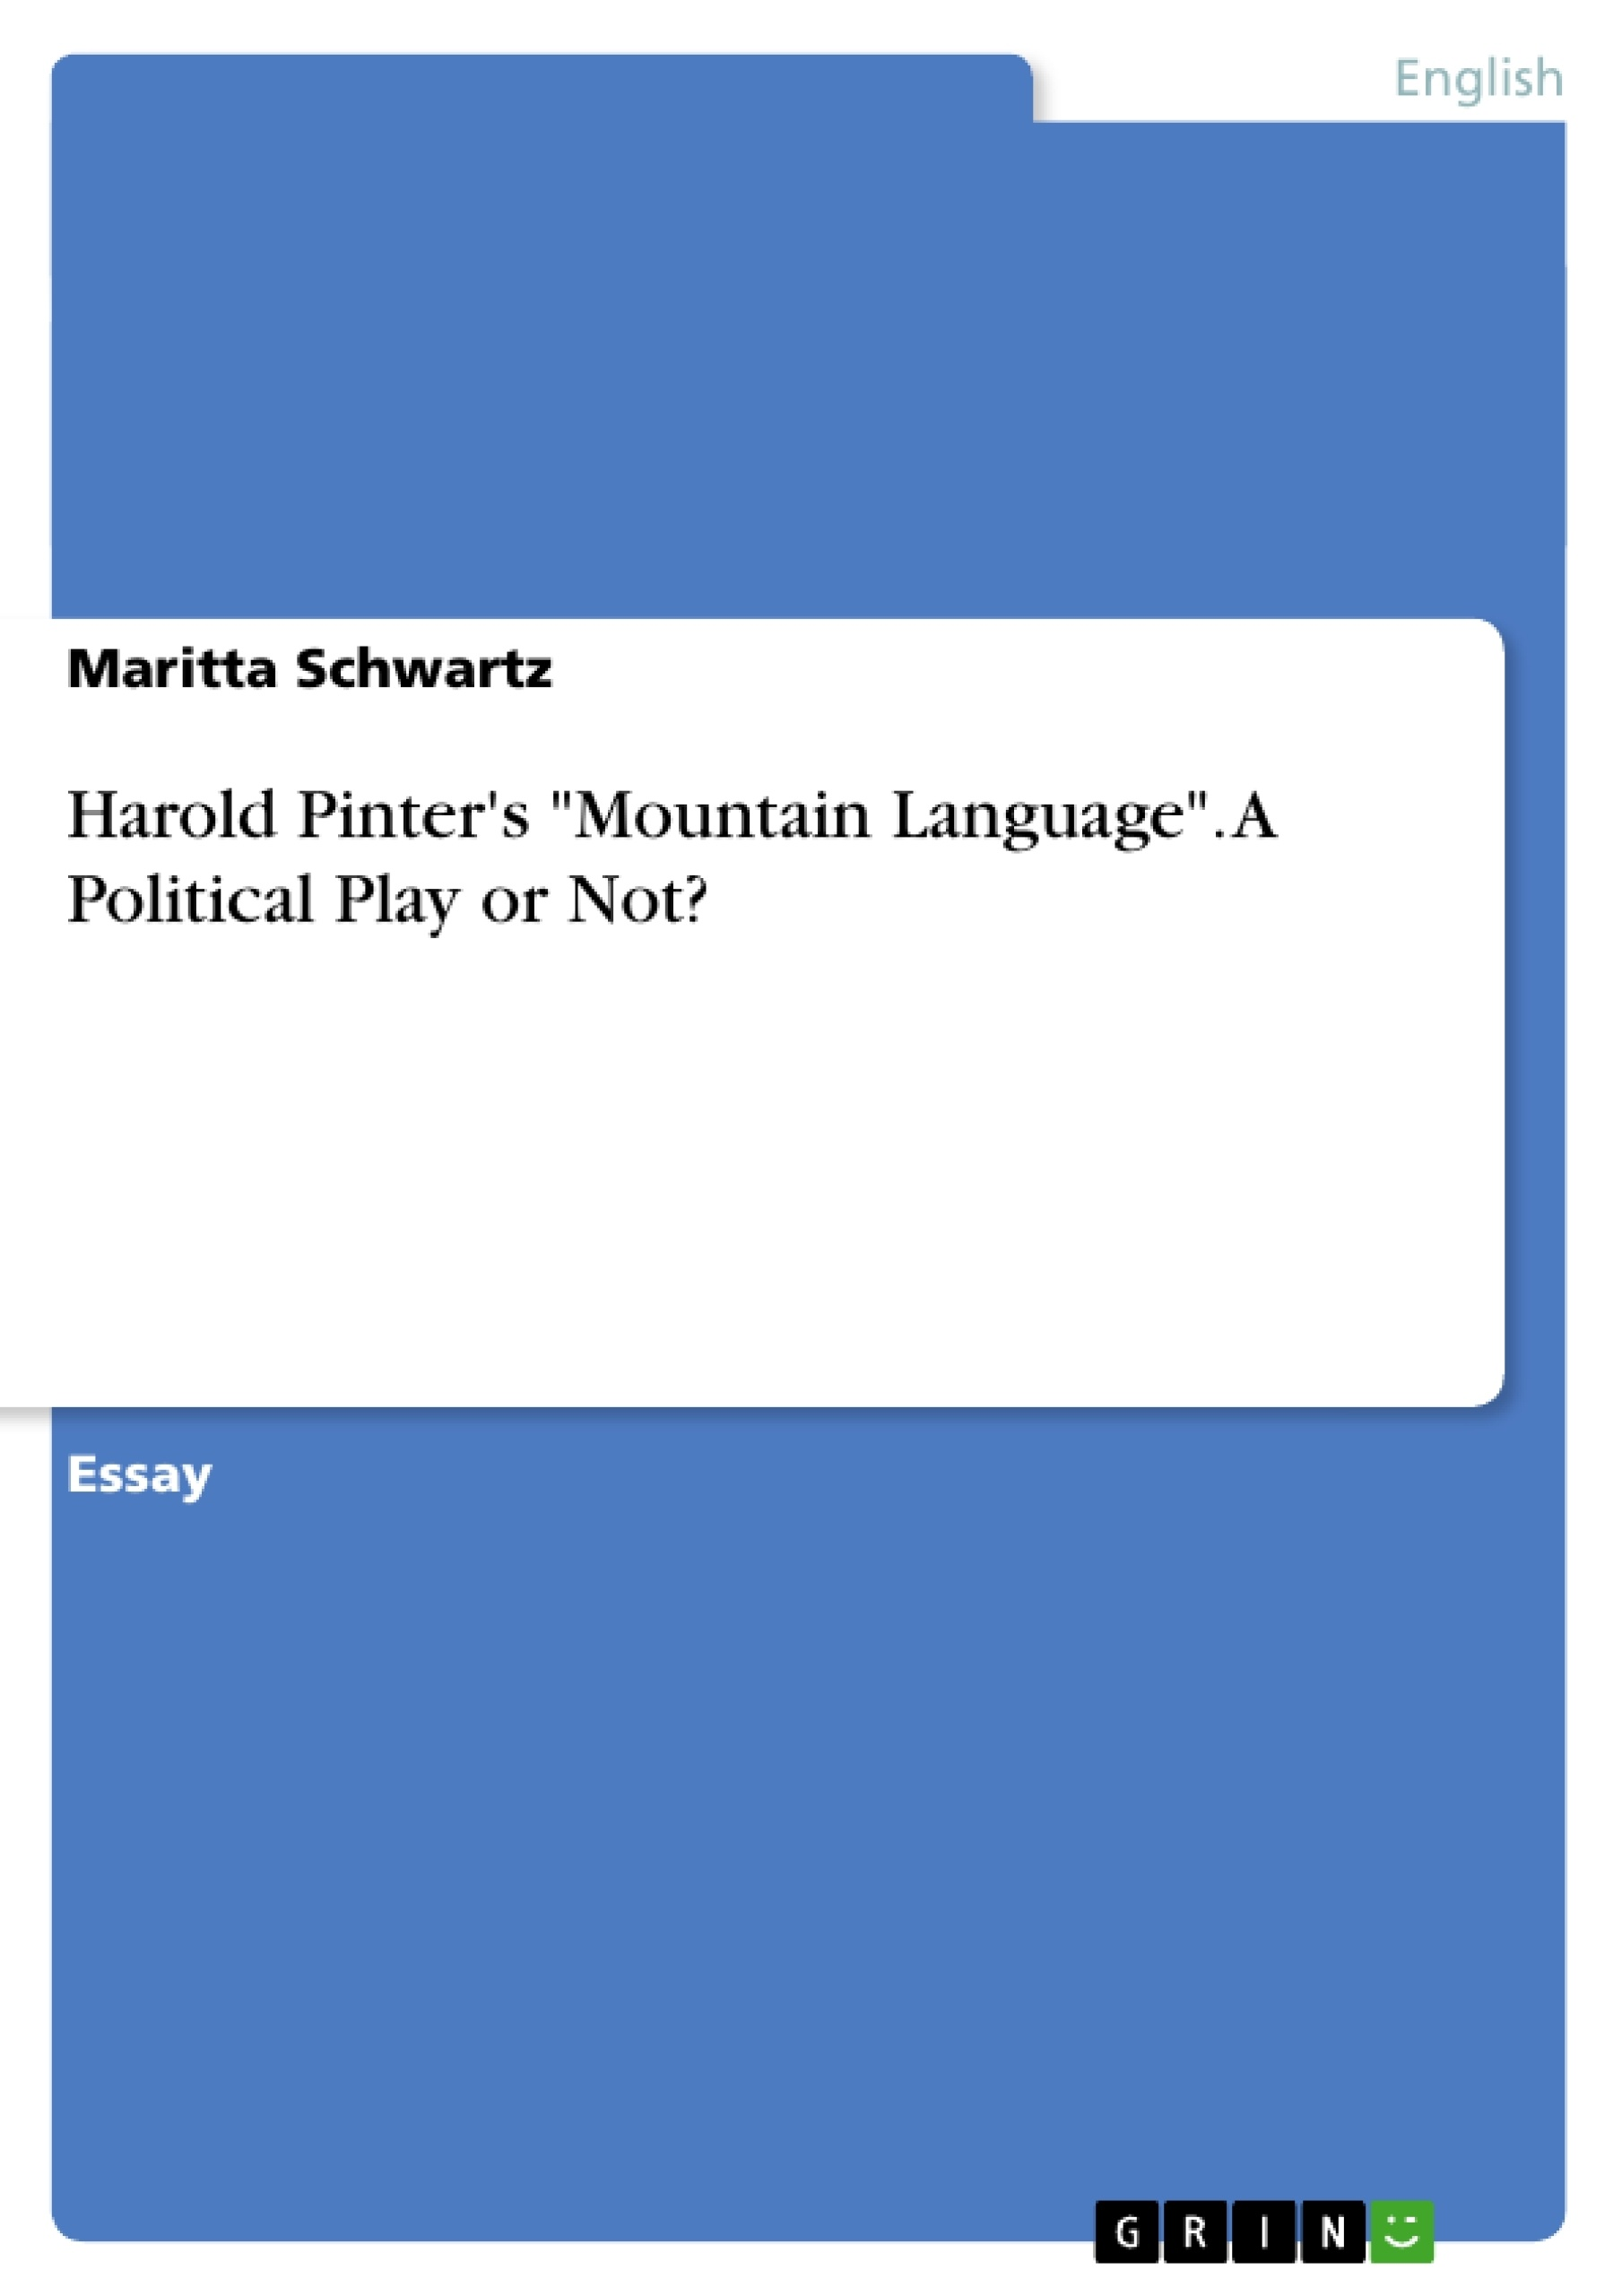 Politics And The English Language Essay Human Development Essay  Harold Pinter S Mountain Language A Political Play Or Not Harold Pinter S  Mountain Language A